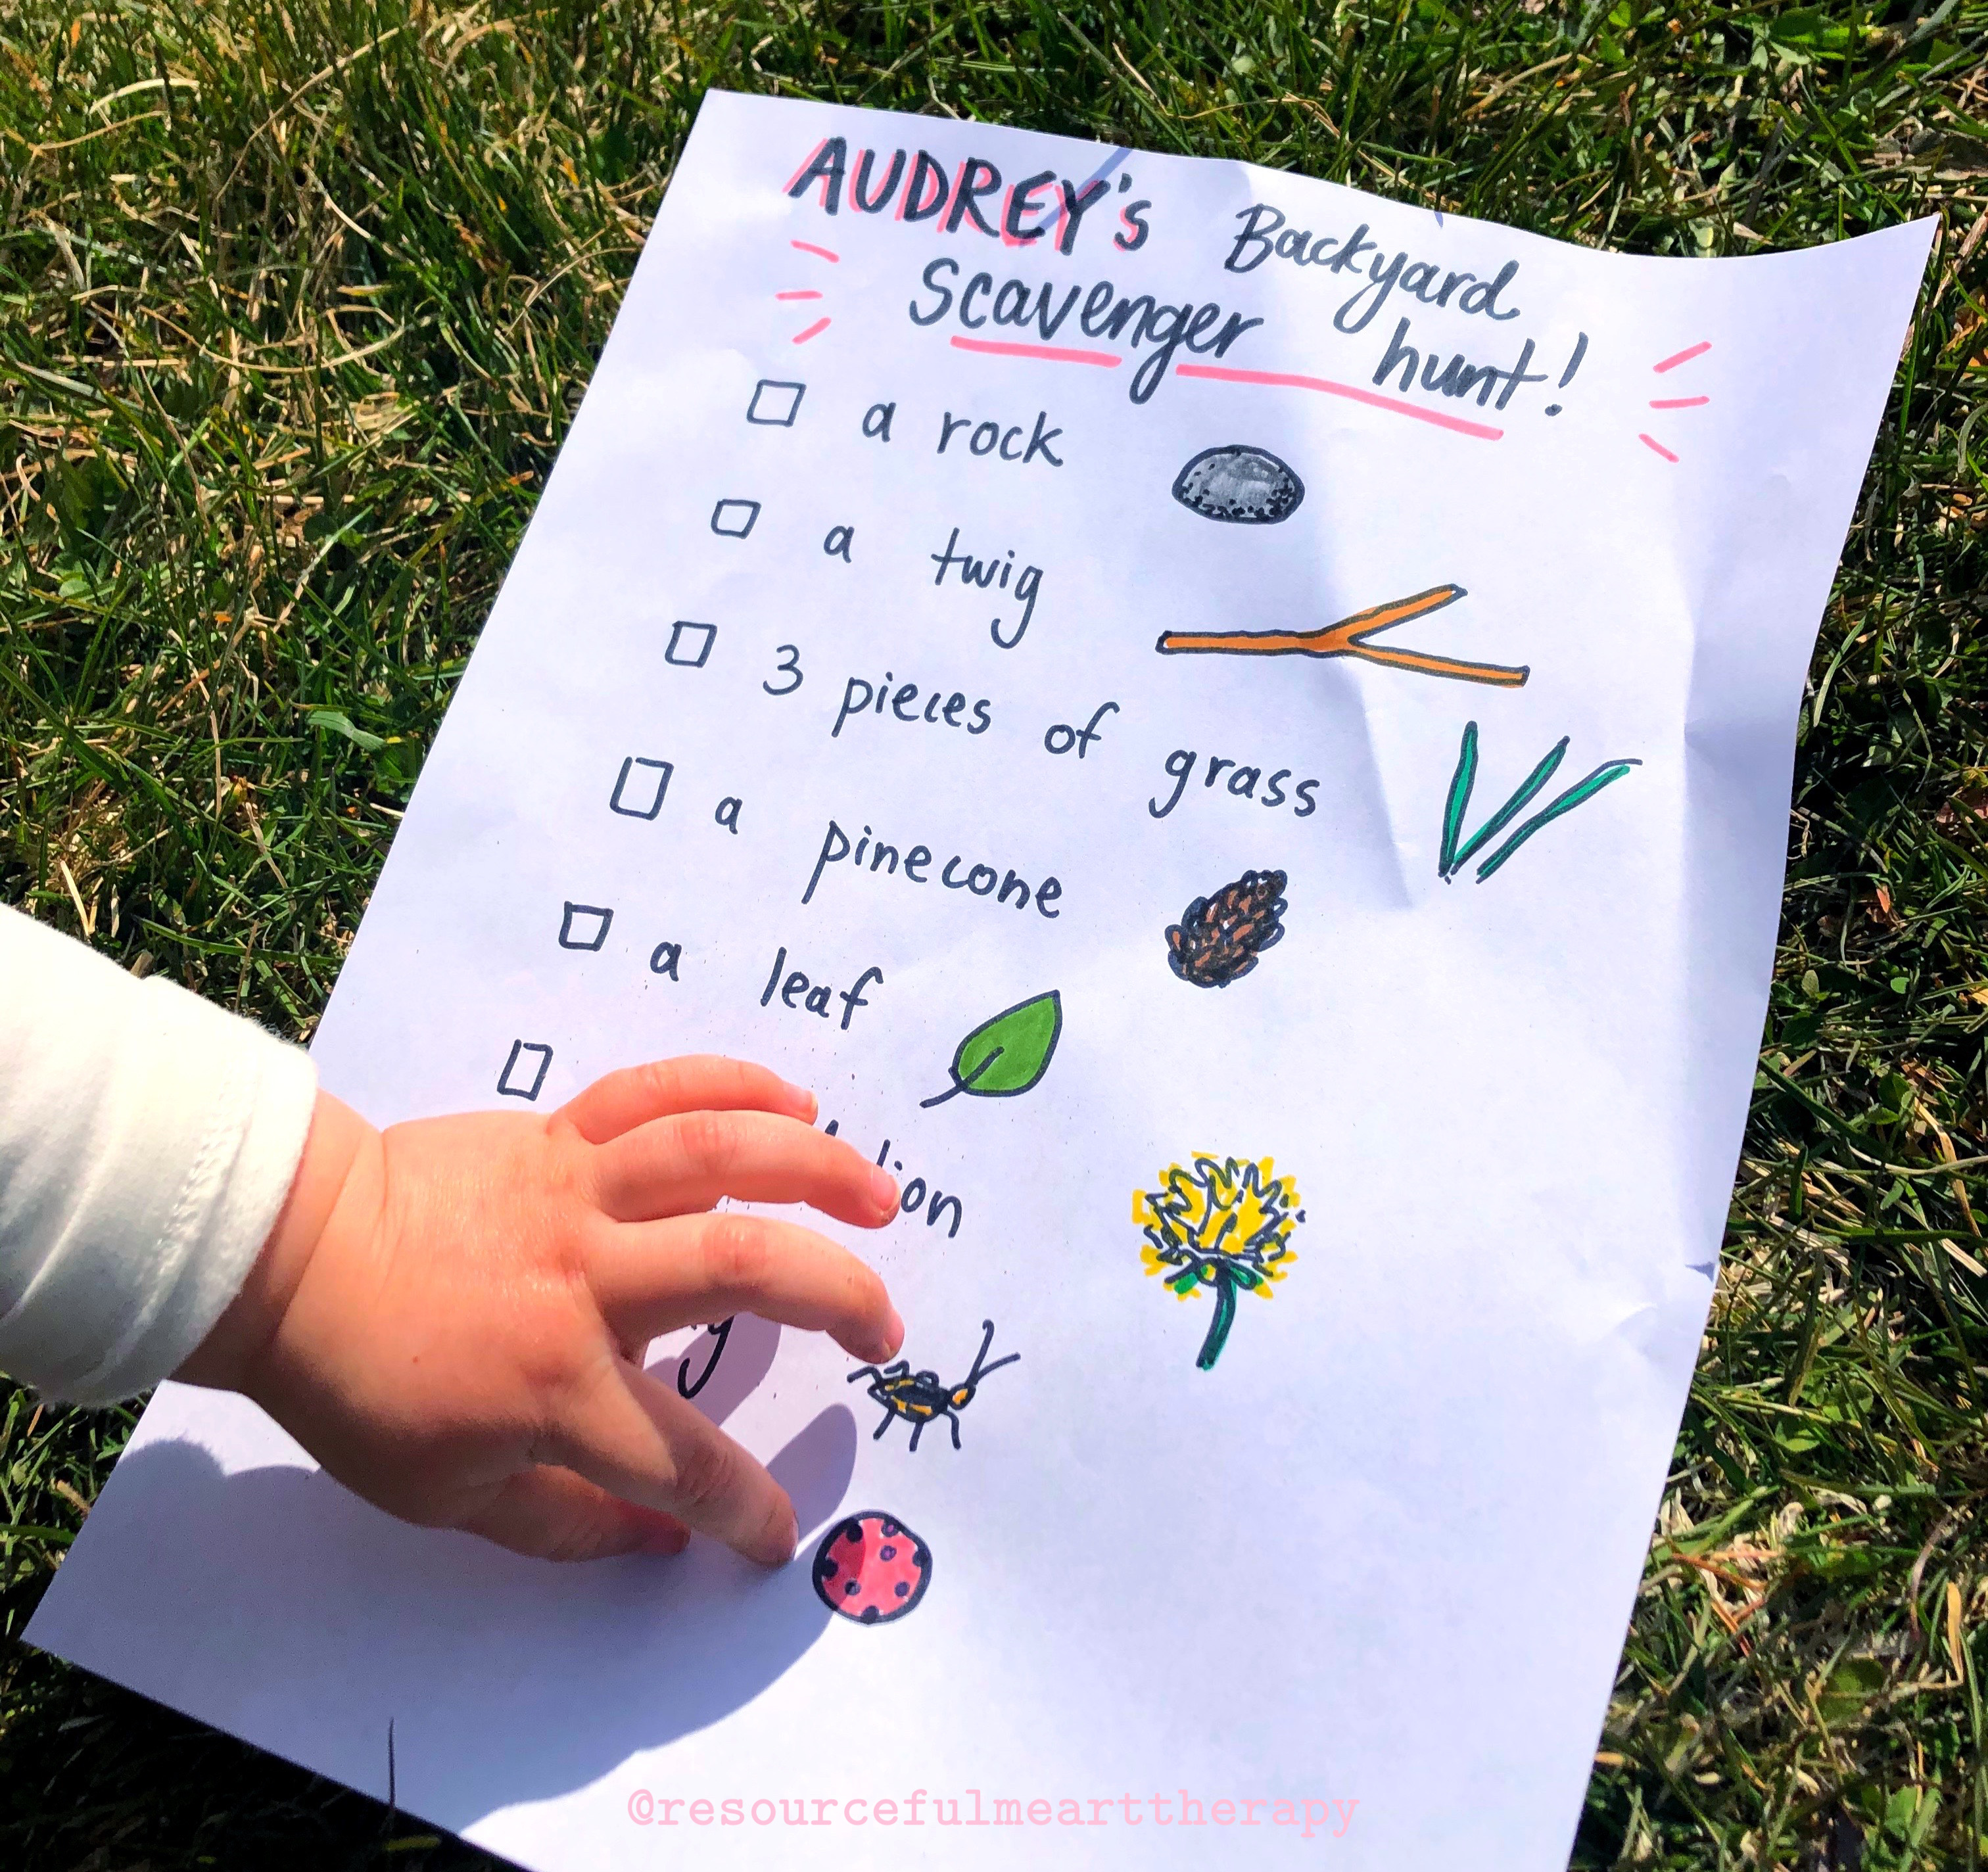 """photo of a child's hand pointing to an item on """"Audrey's Backyard Scavenger Hunt"""" - a list of nature items that can be found in the backyard written on a piece of printer paper. There is a simple illustration beside each item."""